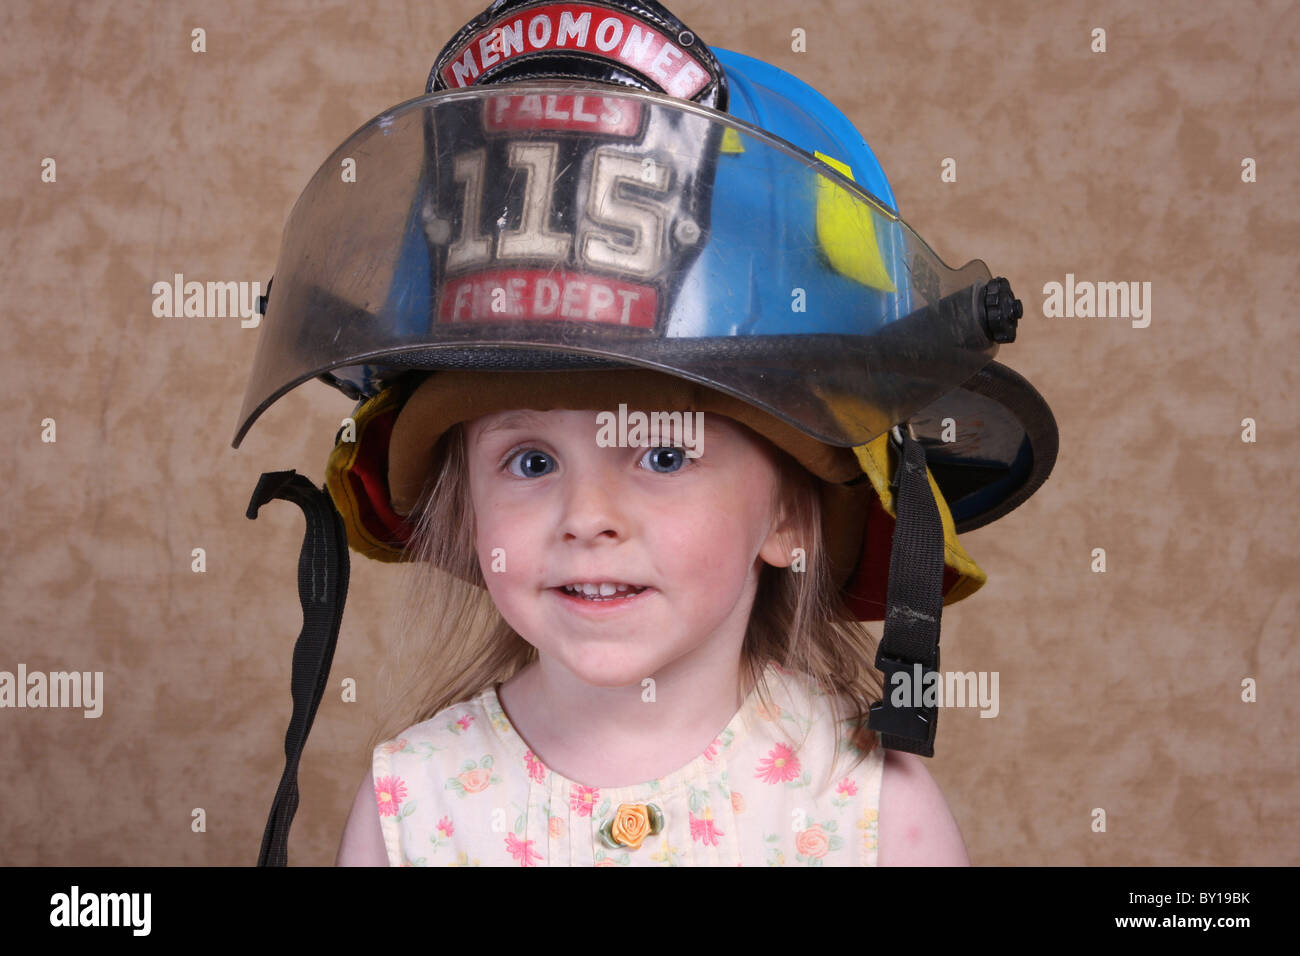 A young girl wearing her fathers firefighting helmet who is a member of the volunteer fire department - Stock Image